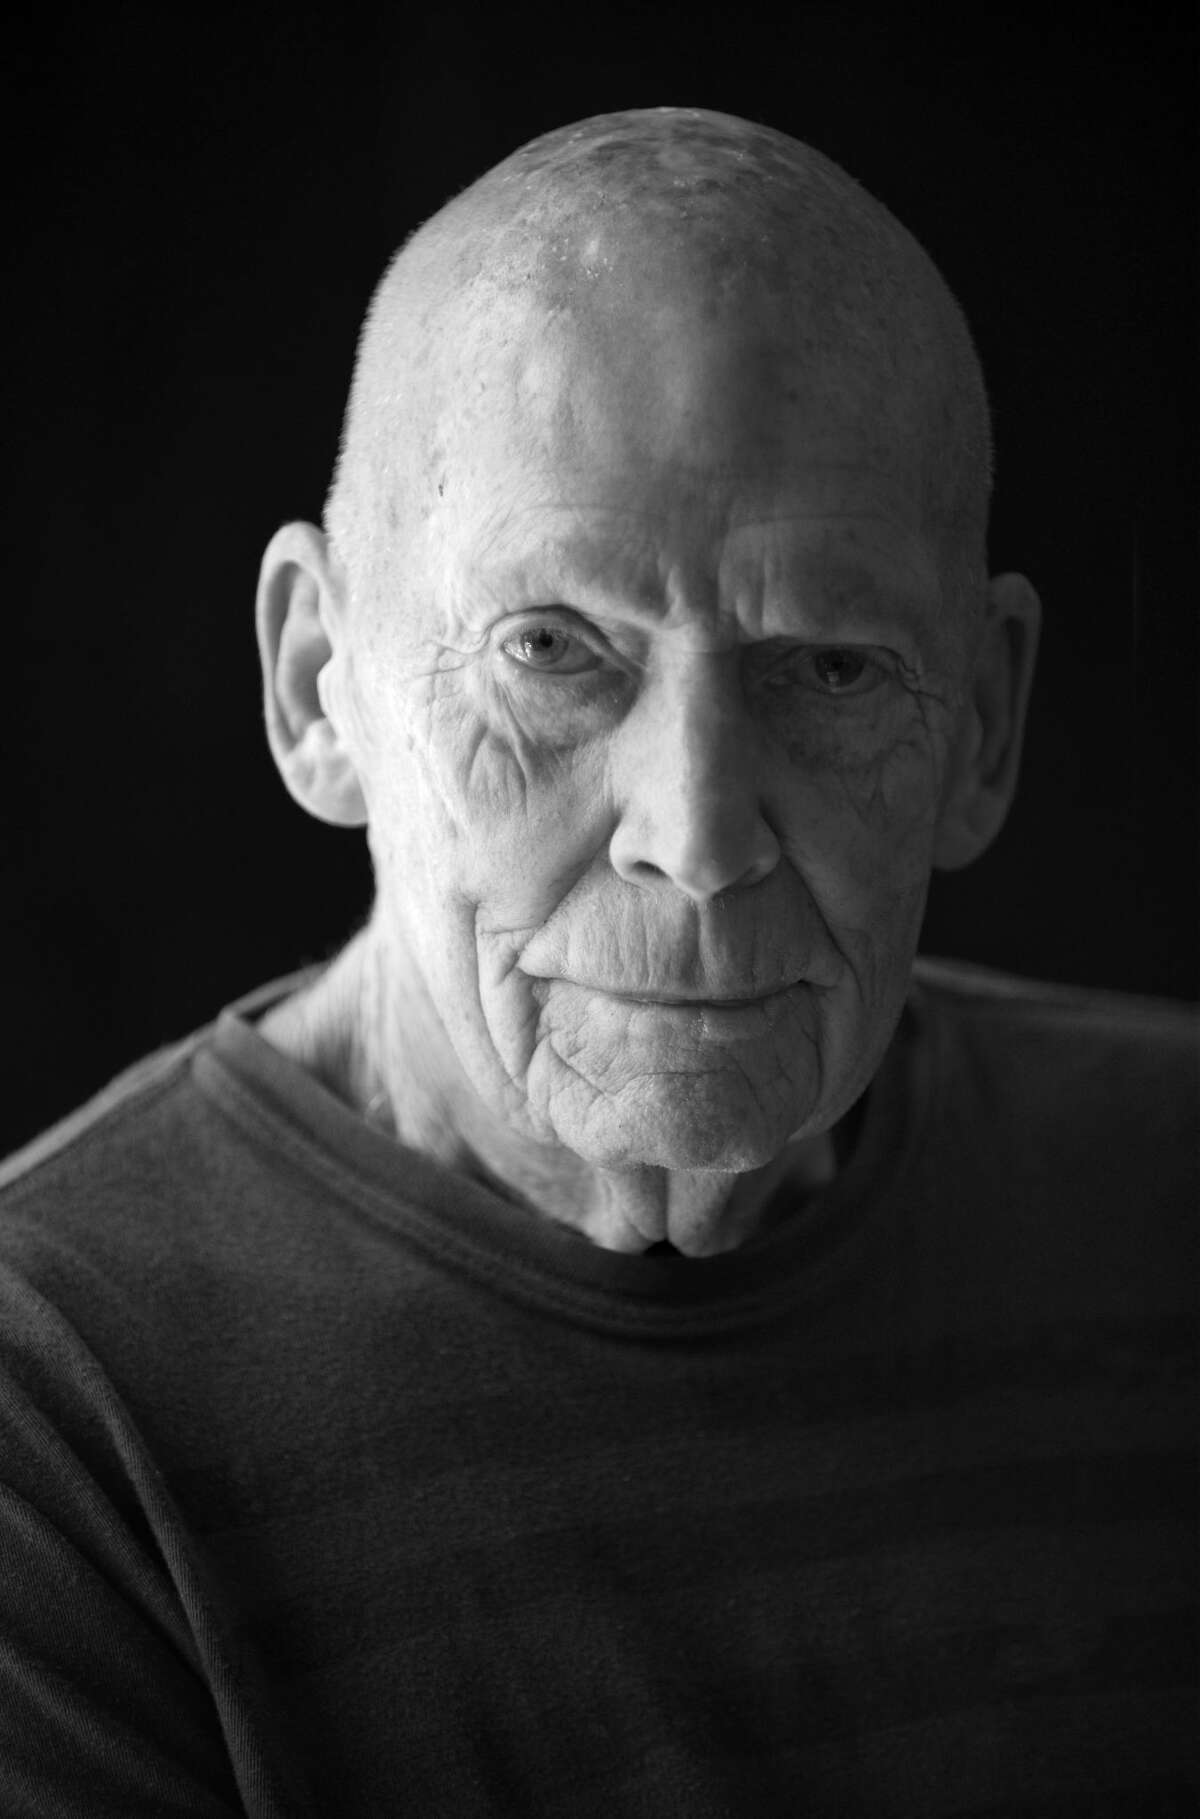 Leslie Laskey, local artist and architect died last week at a St. Louis Missouri hospital. He was 99 years old.